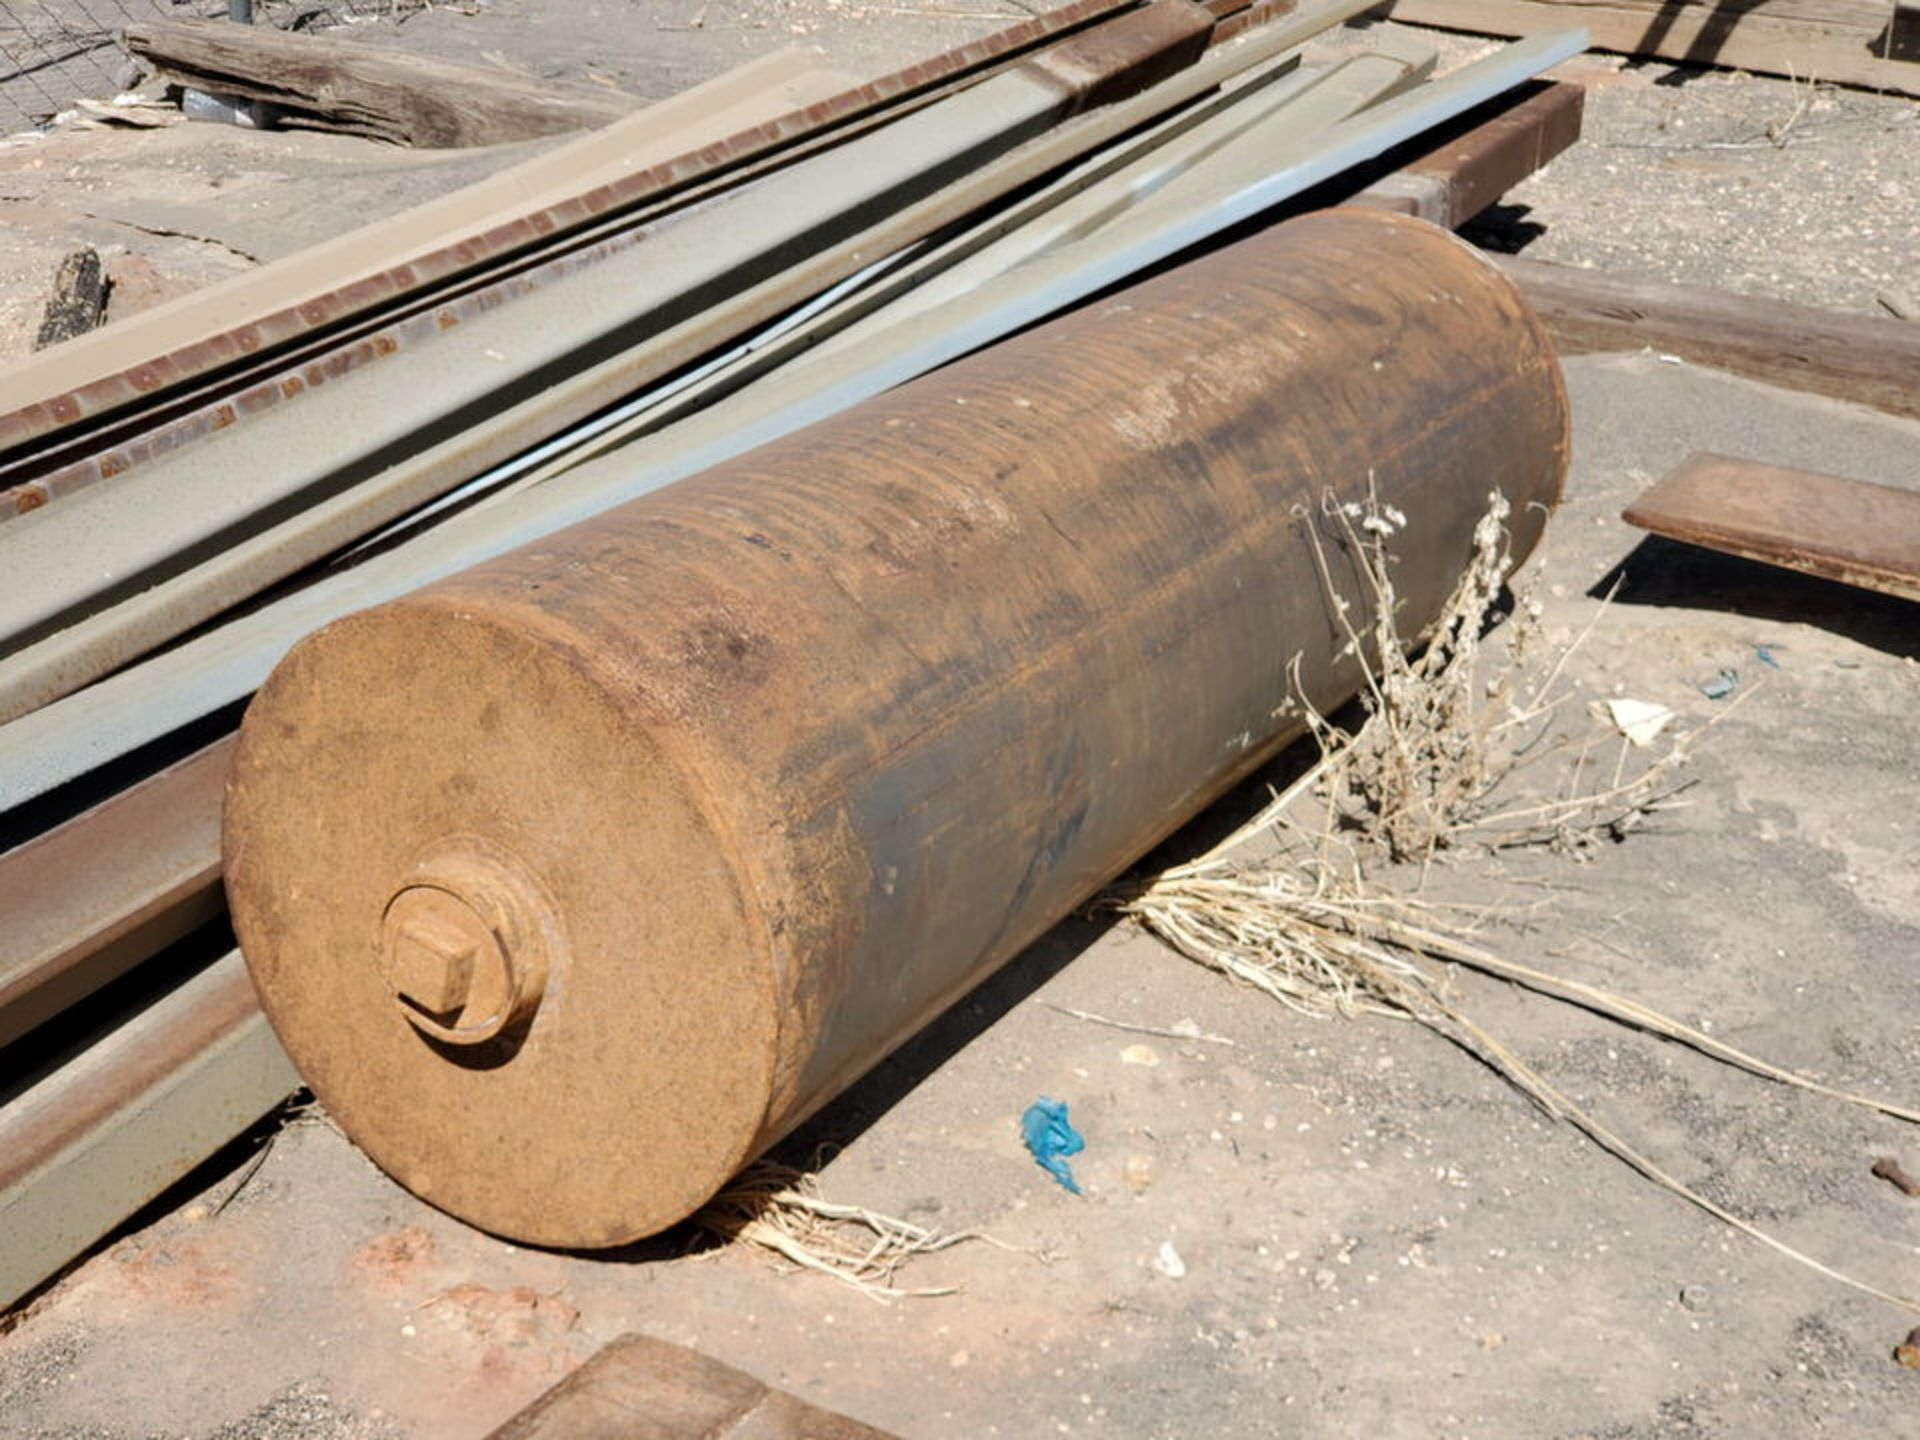 Assorted Material To Include But Not Limited To: Roller, Siding, Channel, Sq. Tubing, etc. - Image 9 of 10